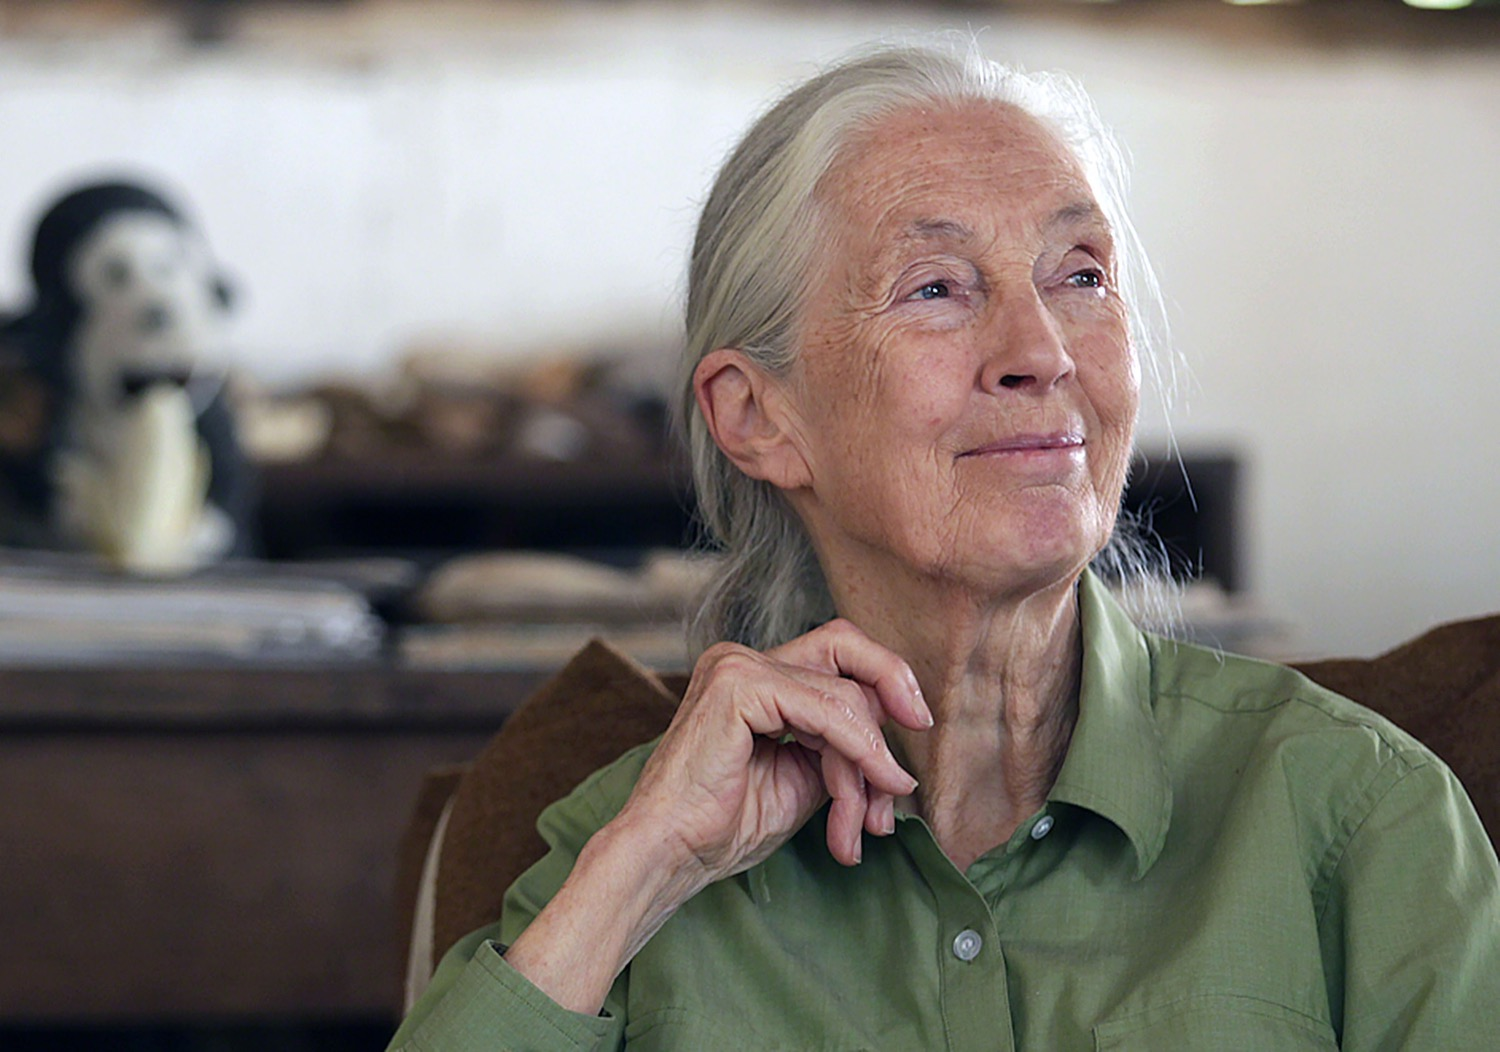 jane goodall stares wistfully into the distance, smiling warmly